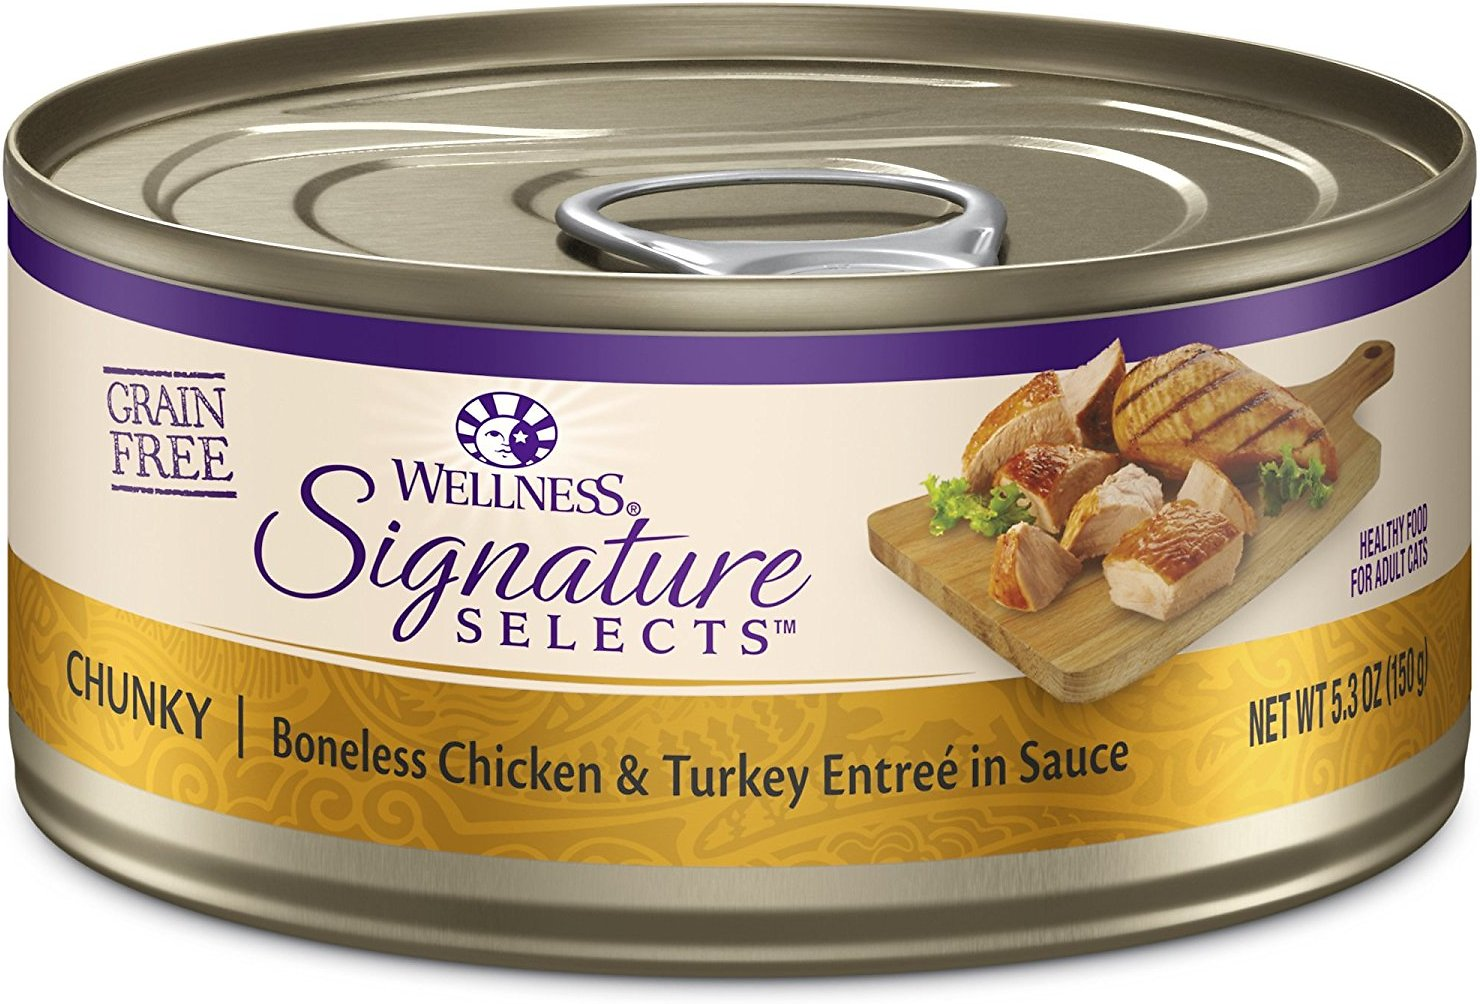 Wellness CORE Signature Selects Chunky Boneless Chicken & Turkey Entree in Sauce Grain-Free Canned Cat Food, 5.3-oz